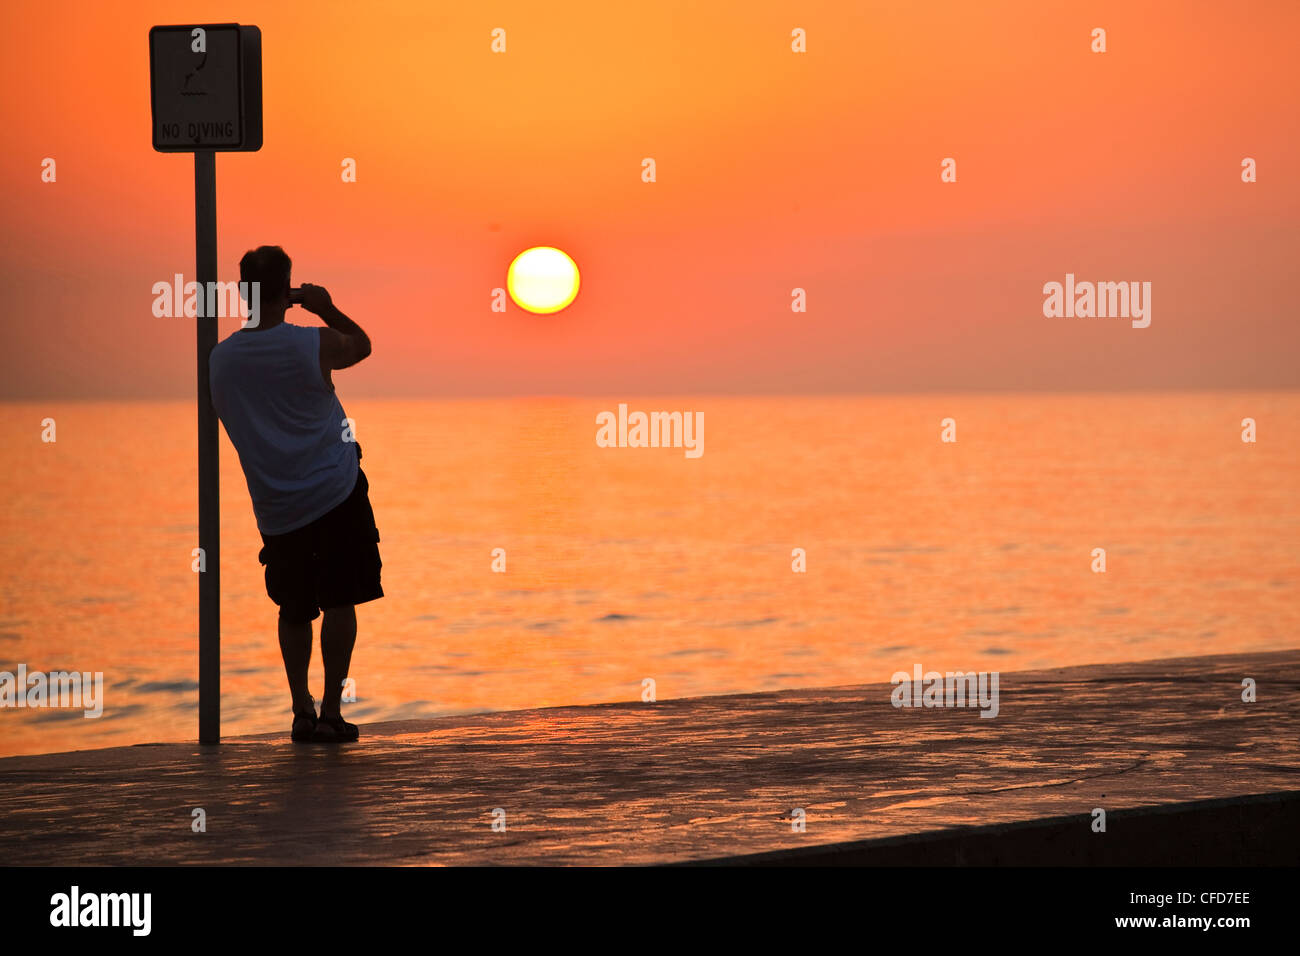 Man leaning on a sign post and photographing the sunrise, Key West, Florida, United States of America. - Stock Image